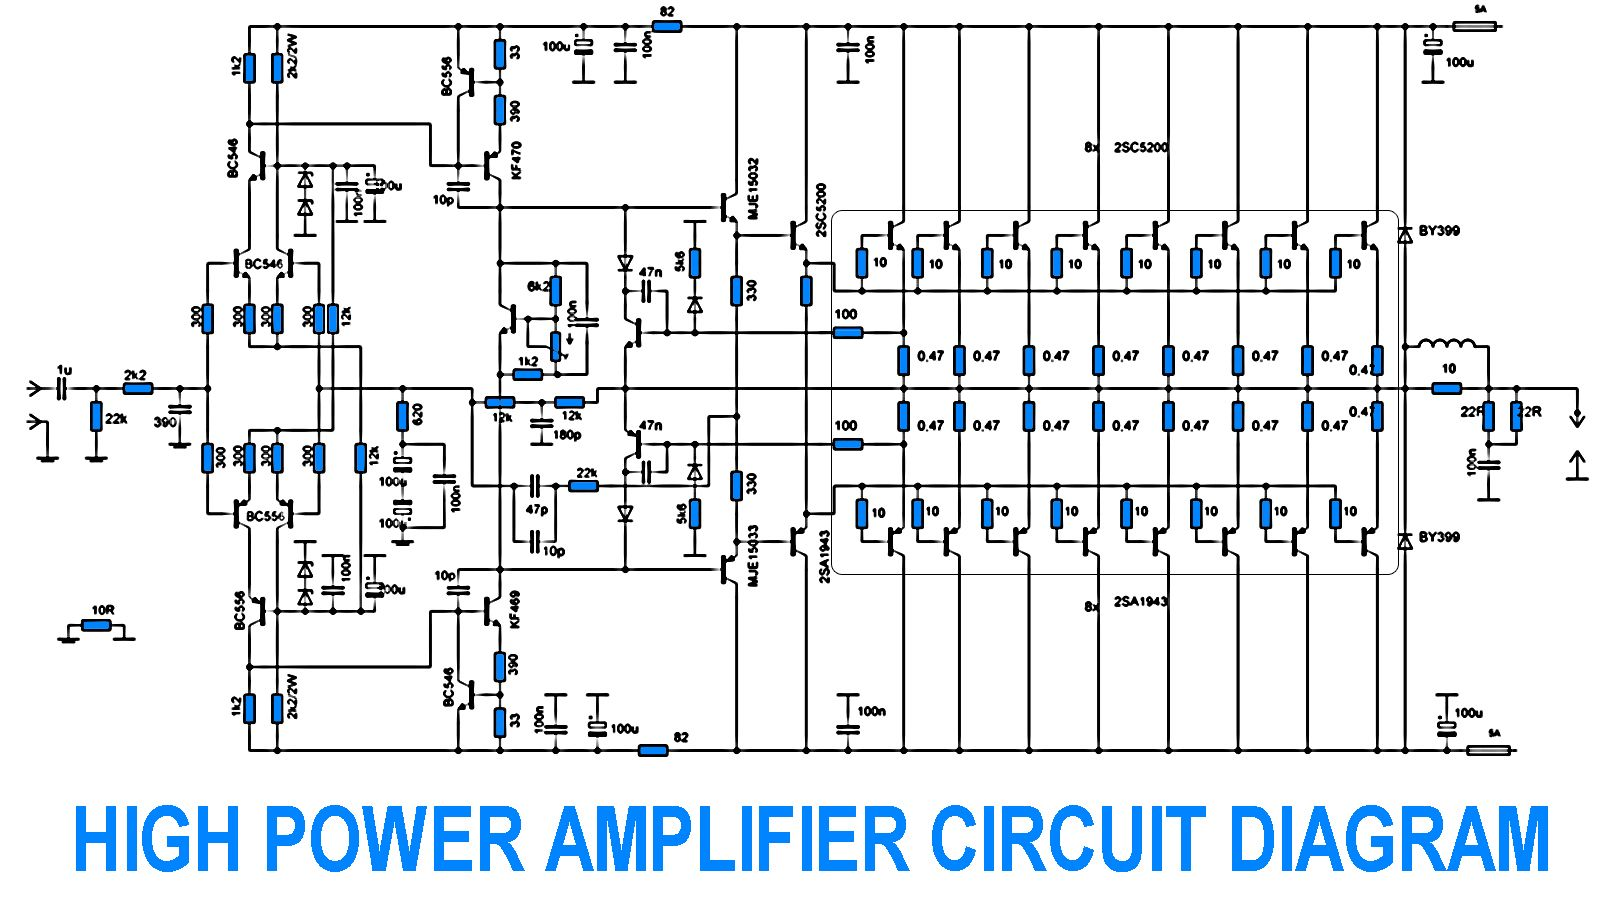 Amplifier Circuit Diagram Electrical Schematics 10w Using Tda2003 700w Power With 2sc5200 2sa1943 Other Projects Exciter